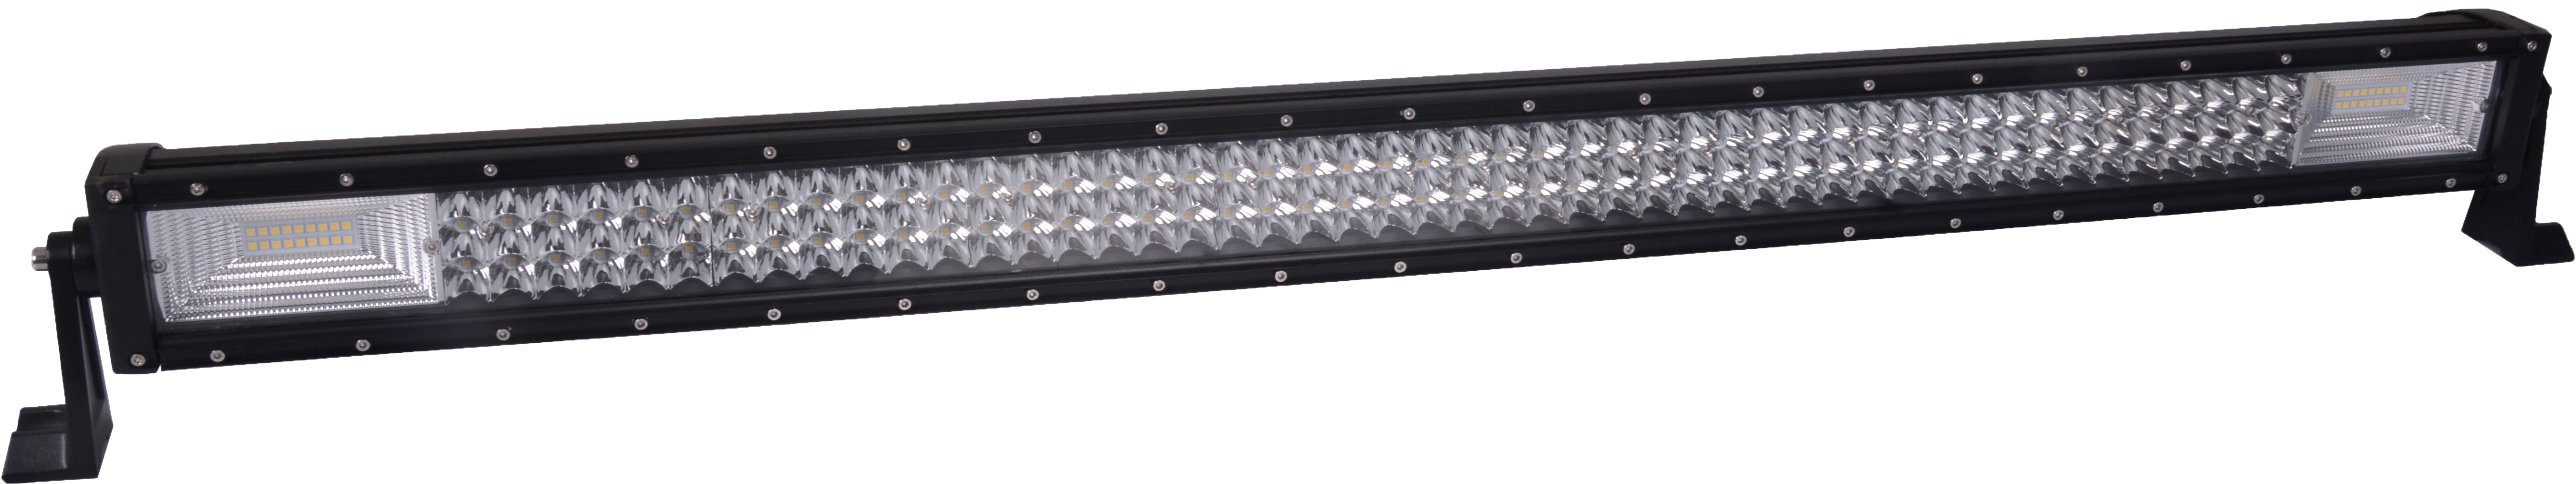 TK324WCB LED LIGHT BAR